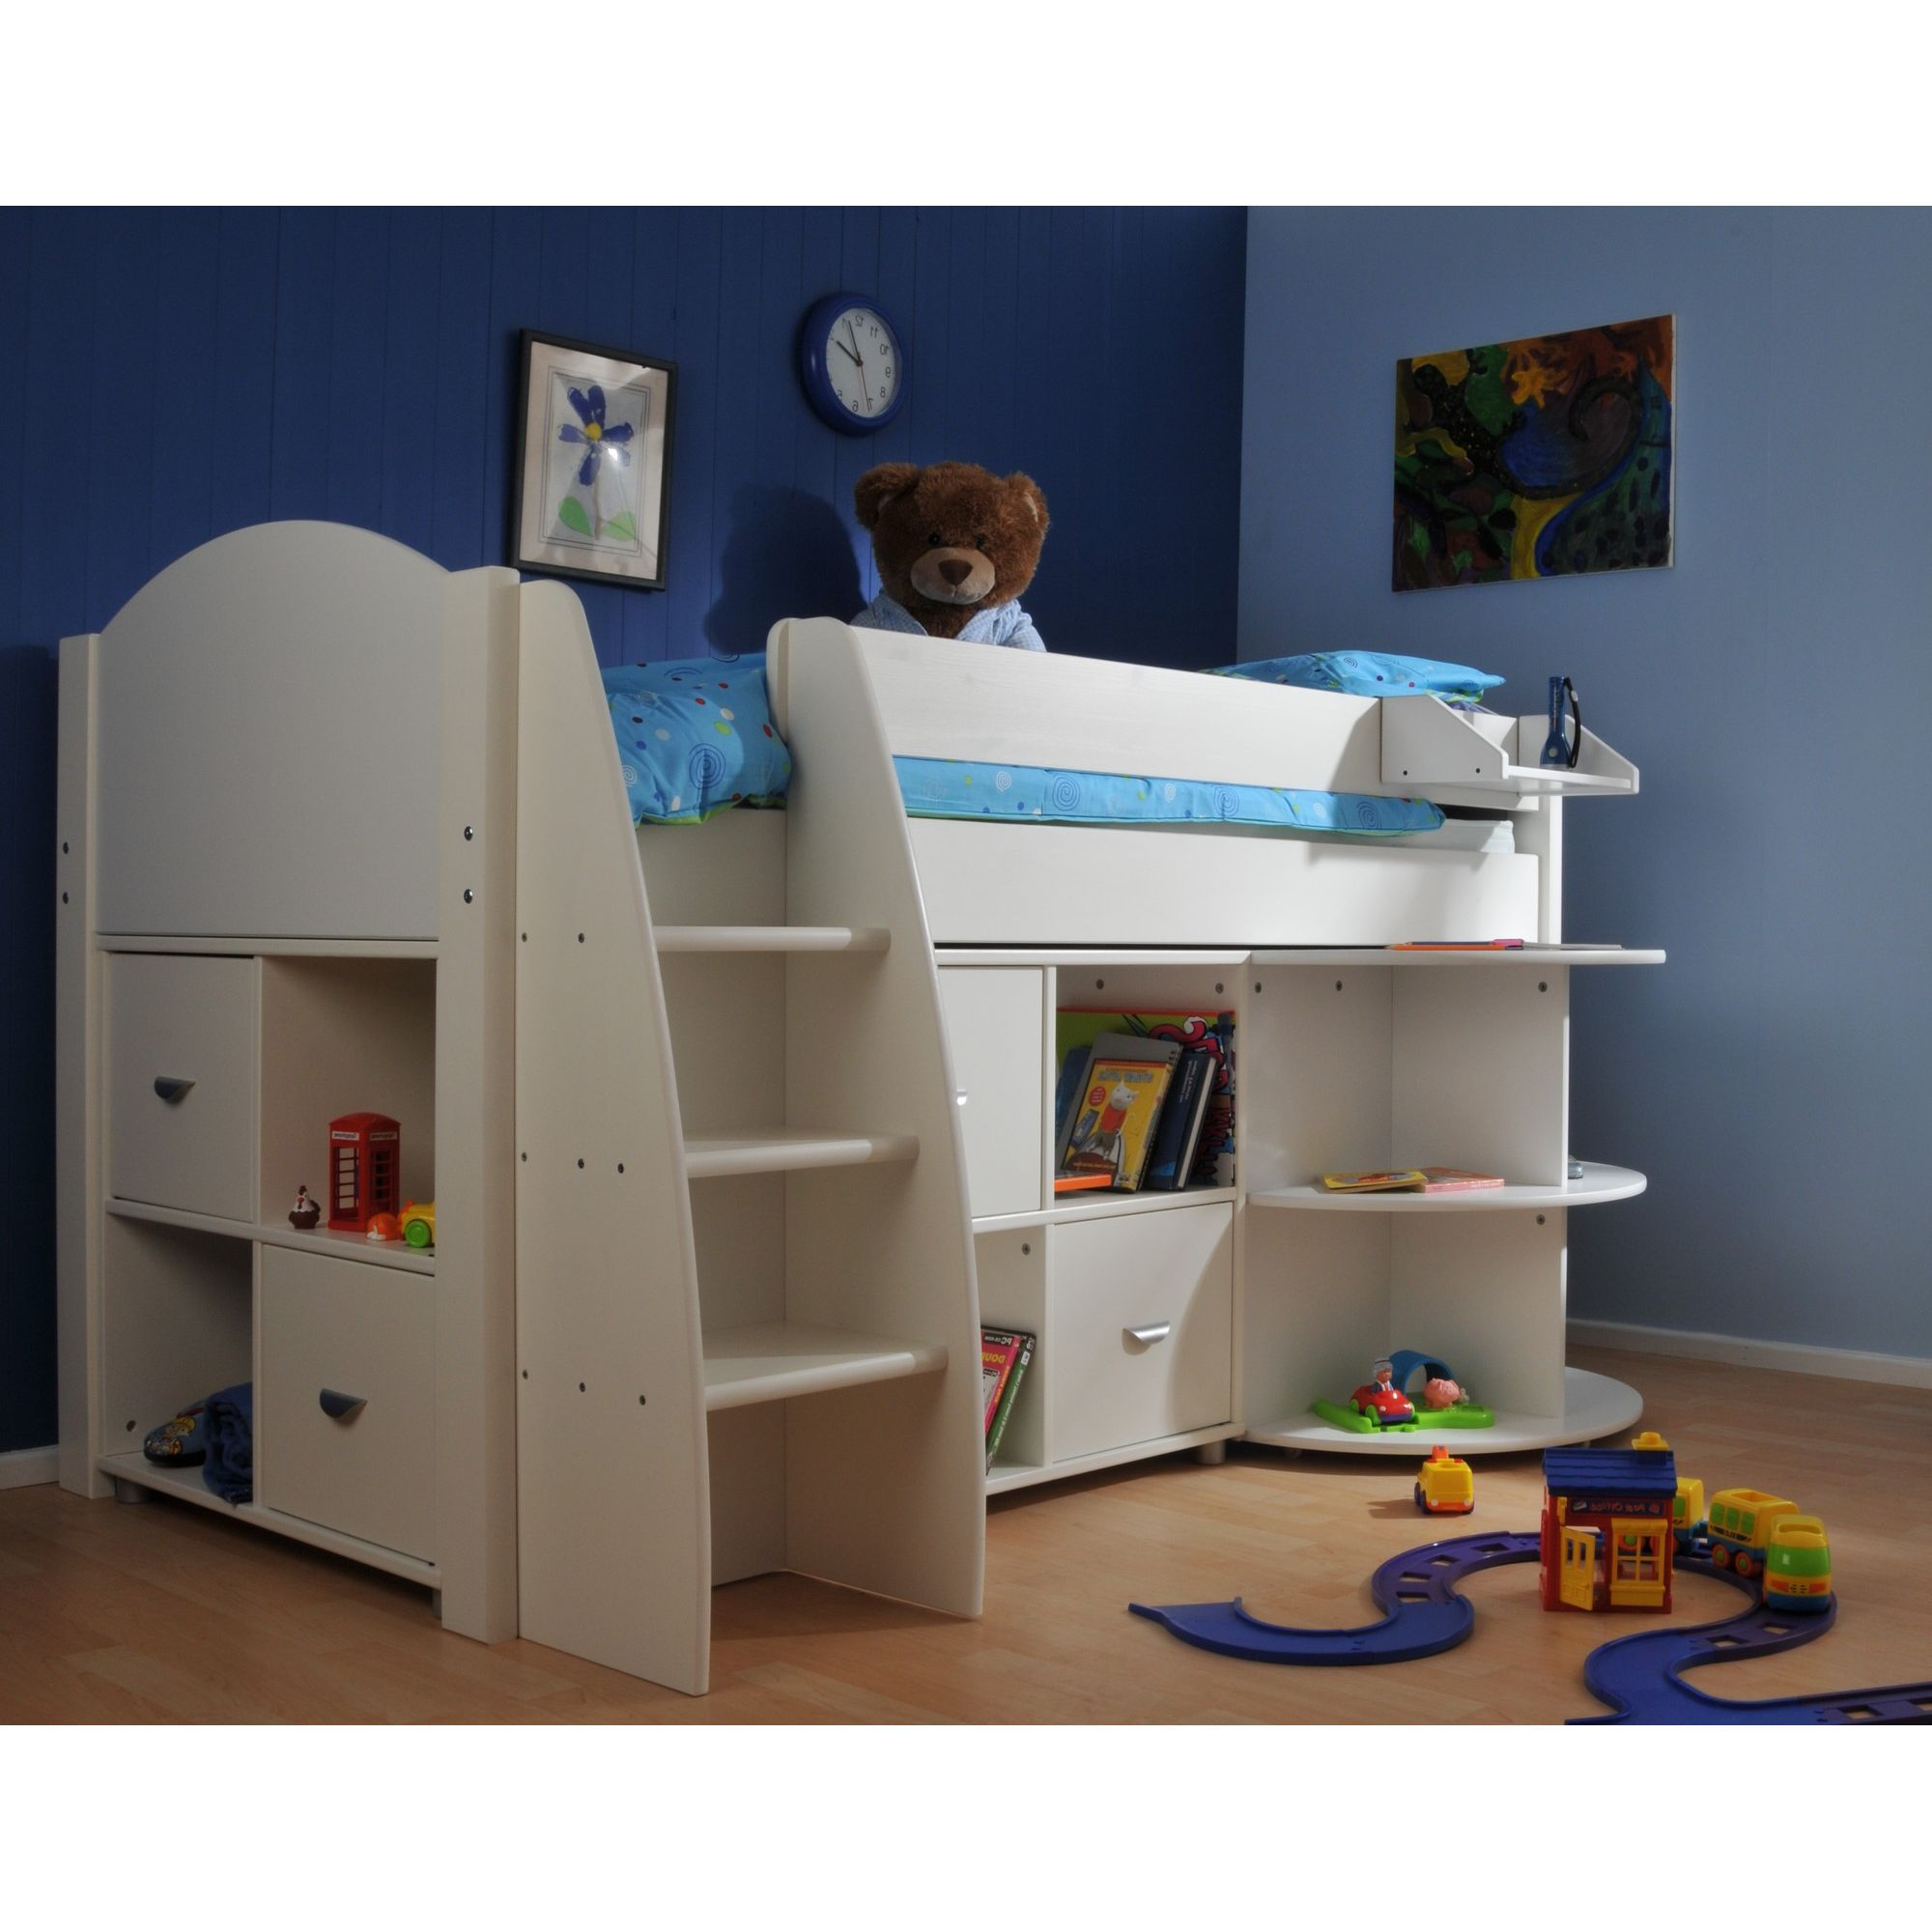 Stompa Rondo Mid Sleeper Bed with 8 Cube Unit and Extending Desk - Antique - White at Tesco Direct